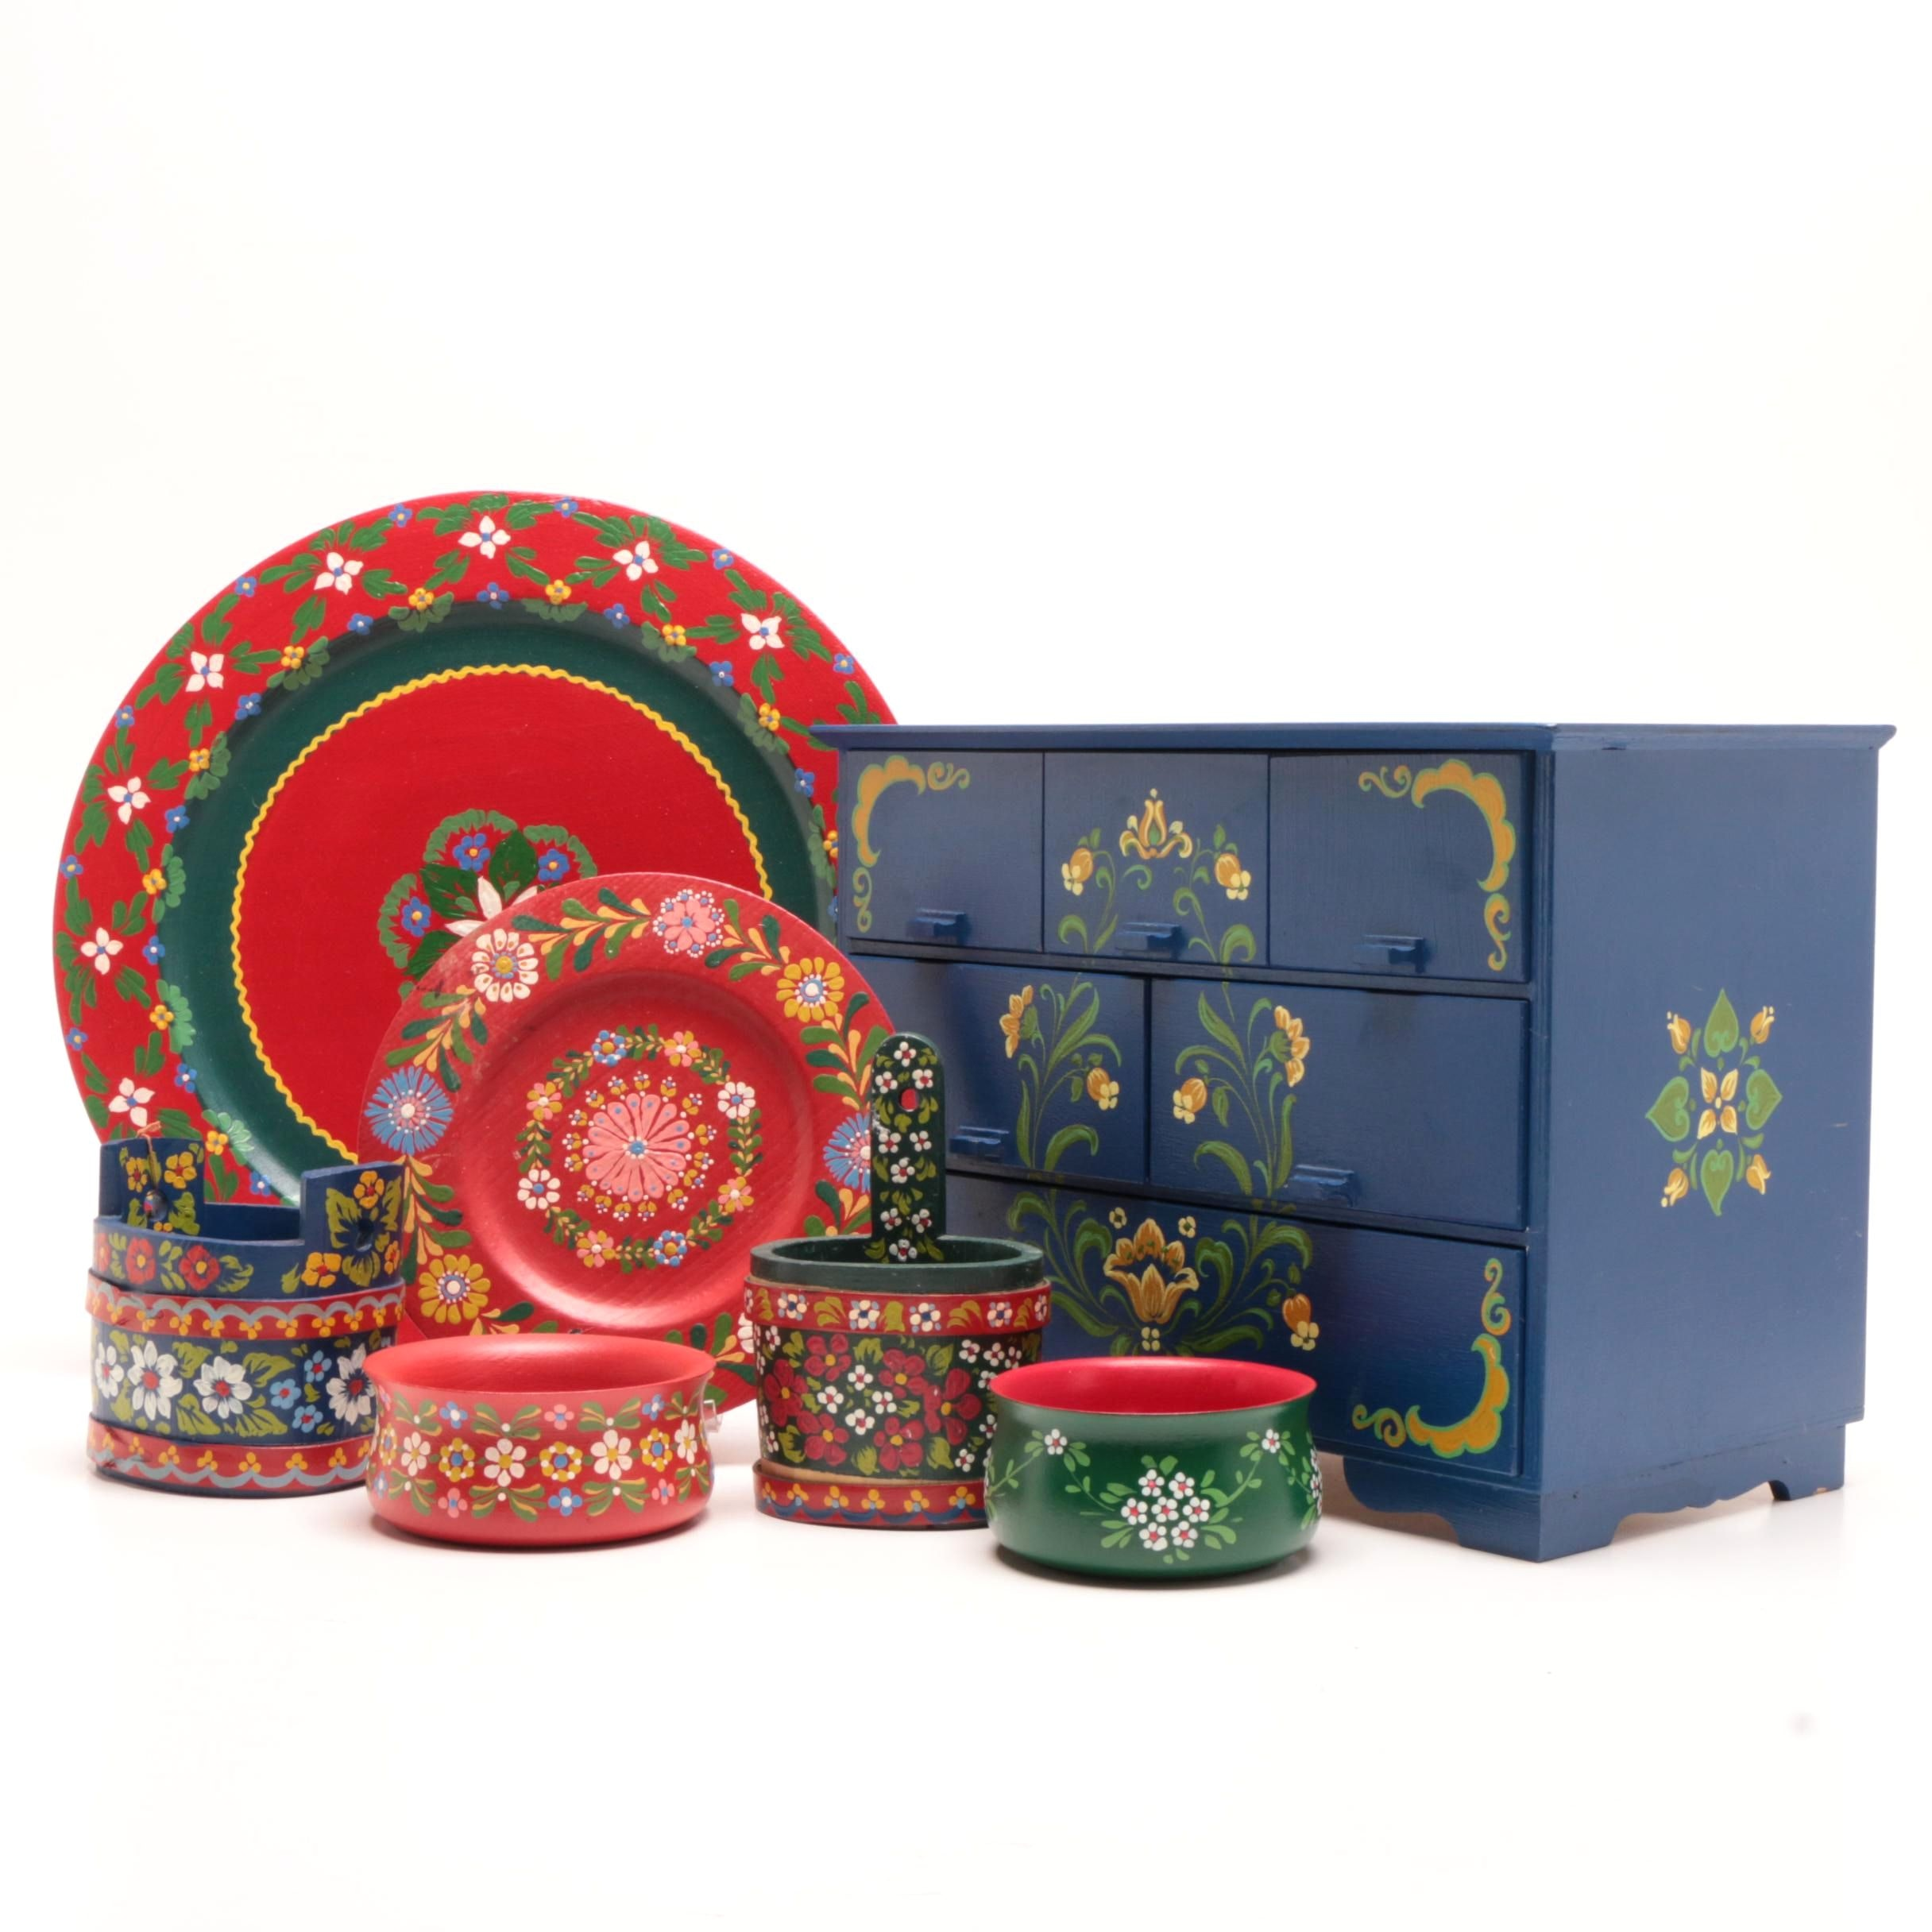 Tole Painted East European Wooden Chest and Decor